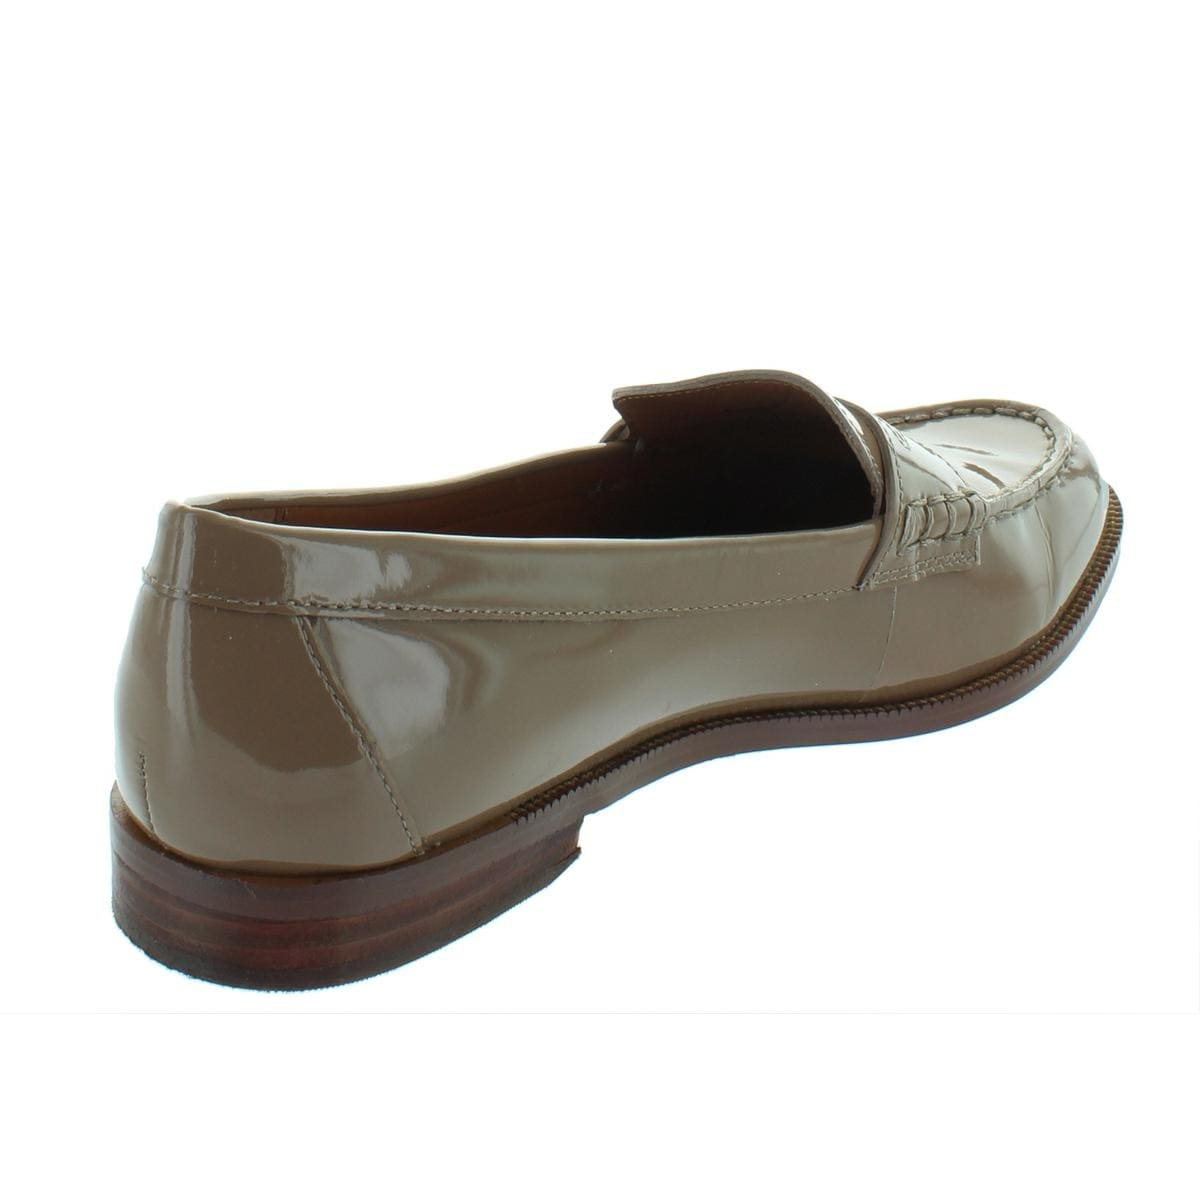 68feaf41a0f Shop Lauren Ralph Lauren Womens Barrett Penny Loafers Slip On - Free  Shipping On Orders Over  45 - Overstock - 21259805